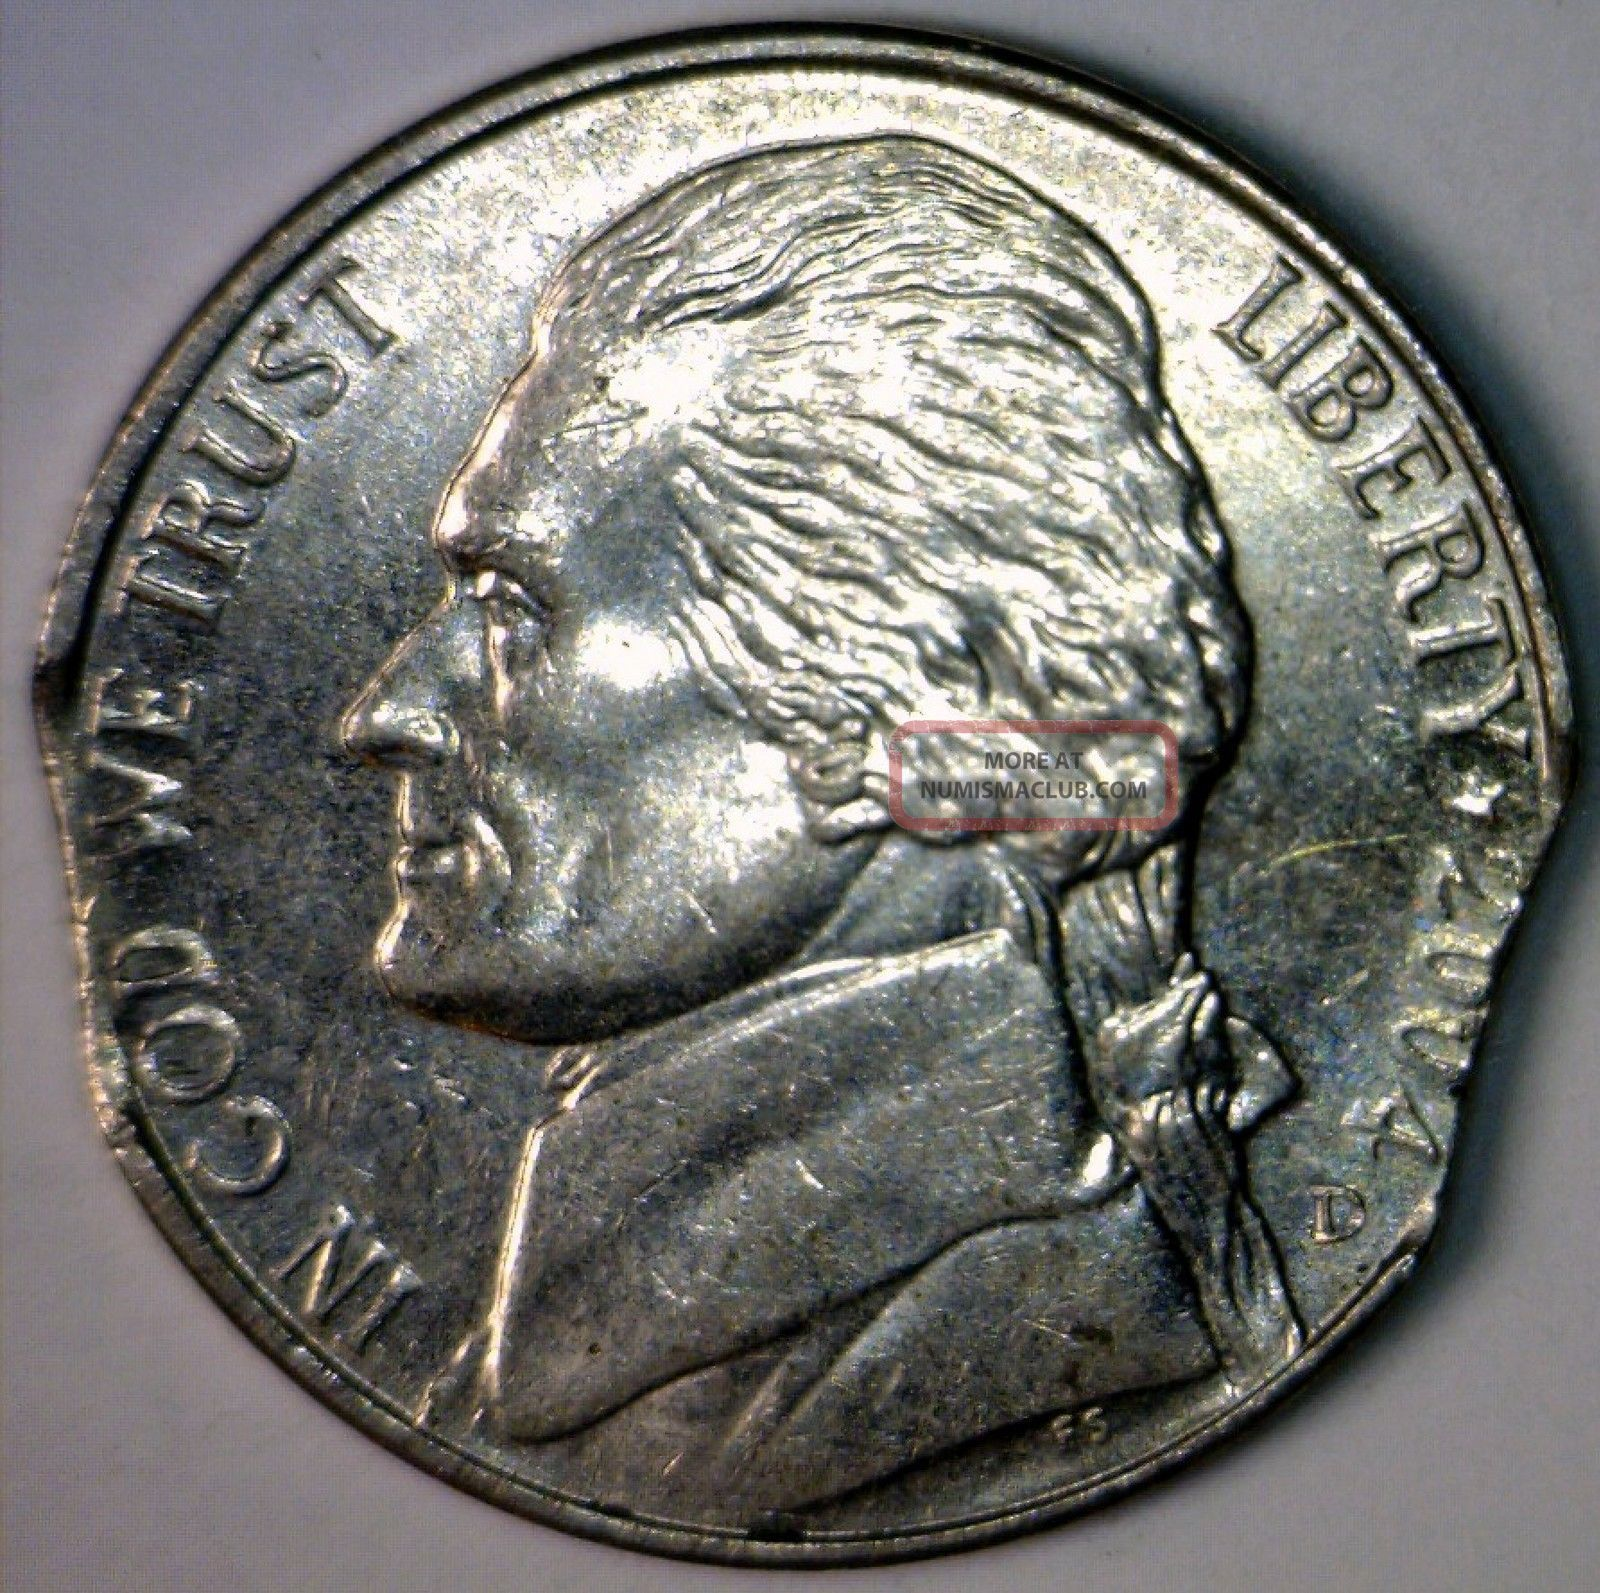 2004 D Error Double Clipped Ch Bu Jefferson Nickel Hand